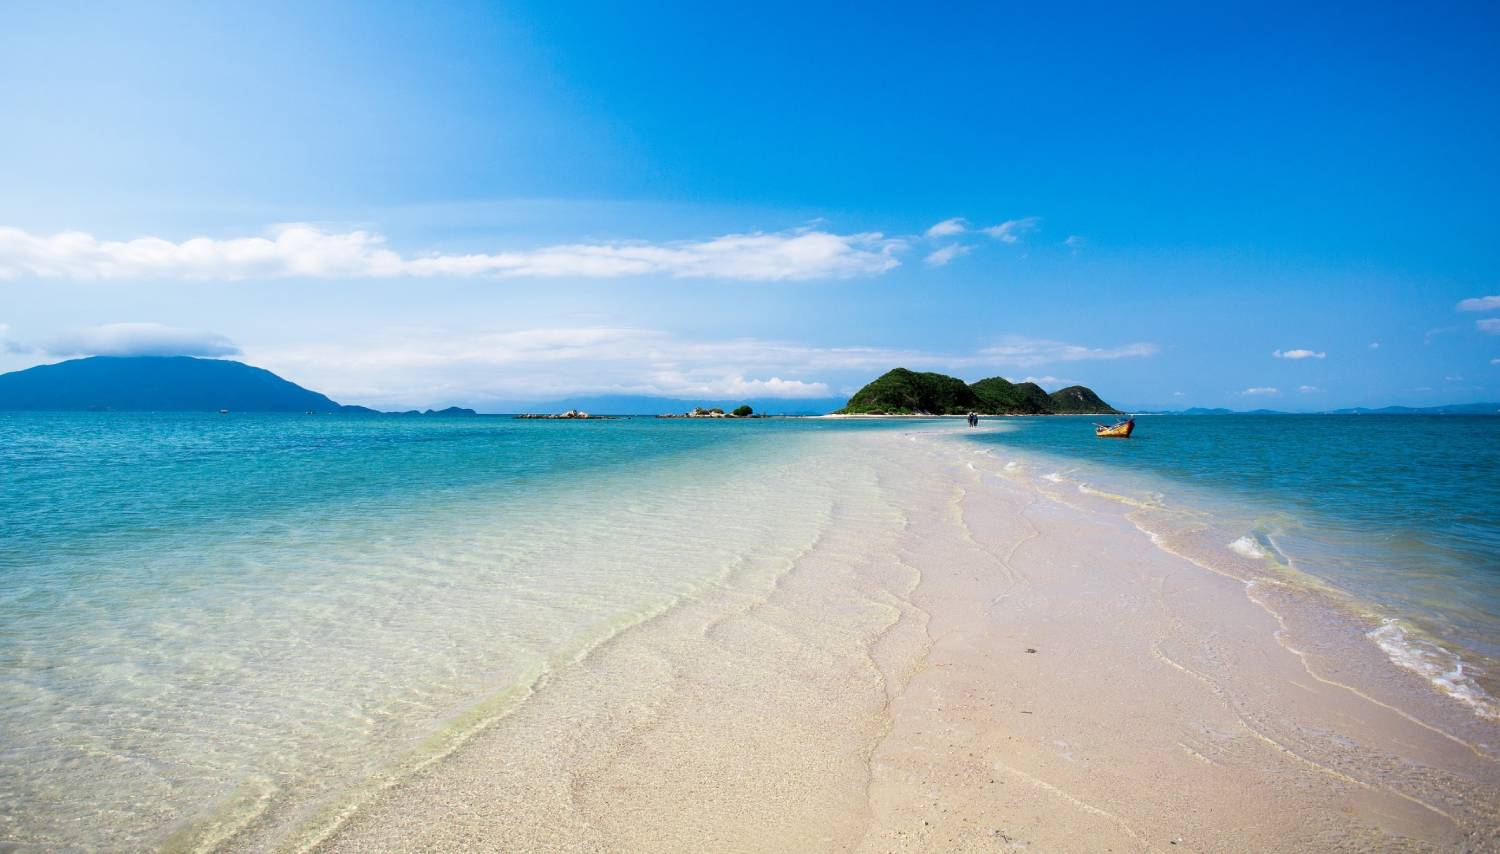 Nha Trang - The Best Places To Visit In Vietnam